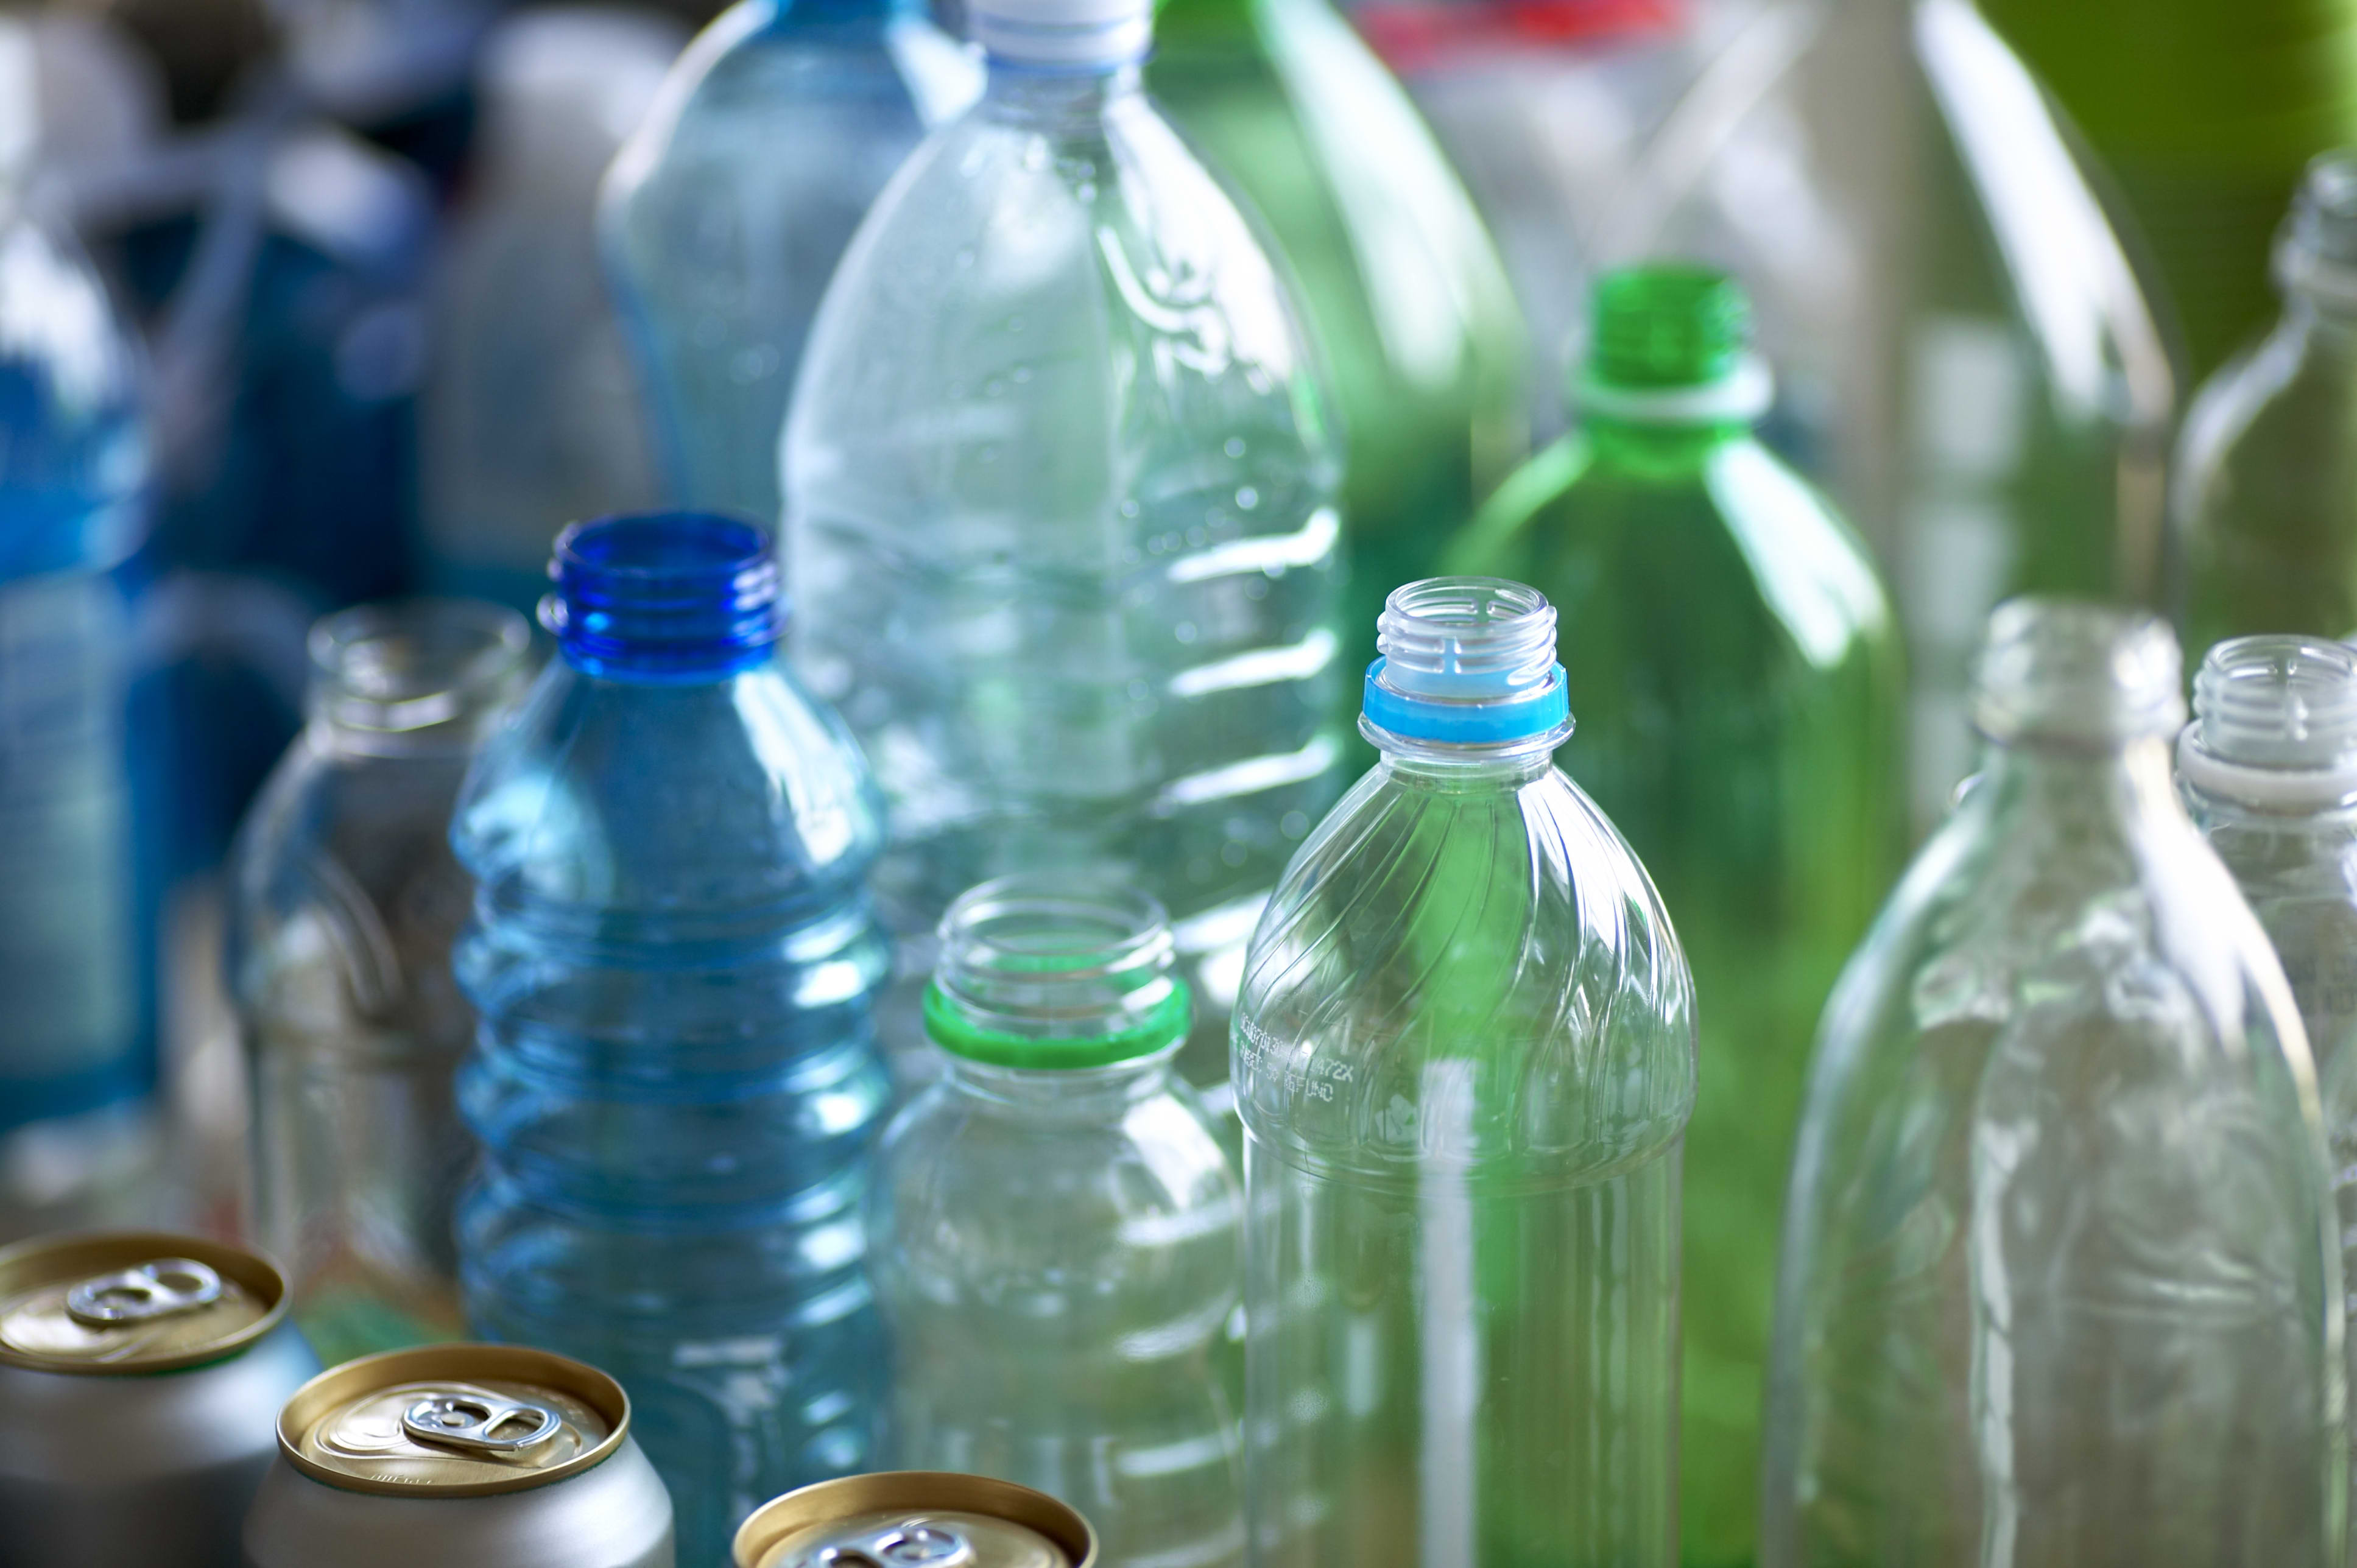 Almost no plastic bottles get recycled into new bottles